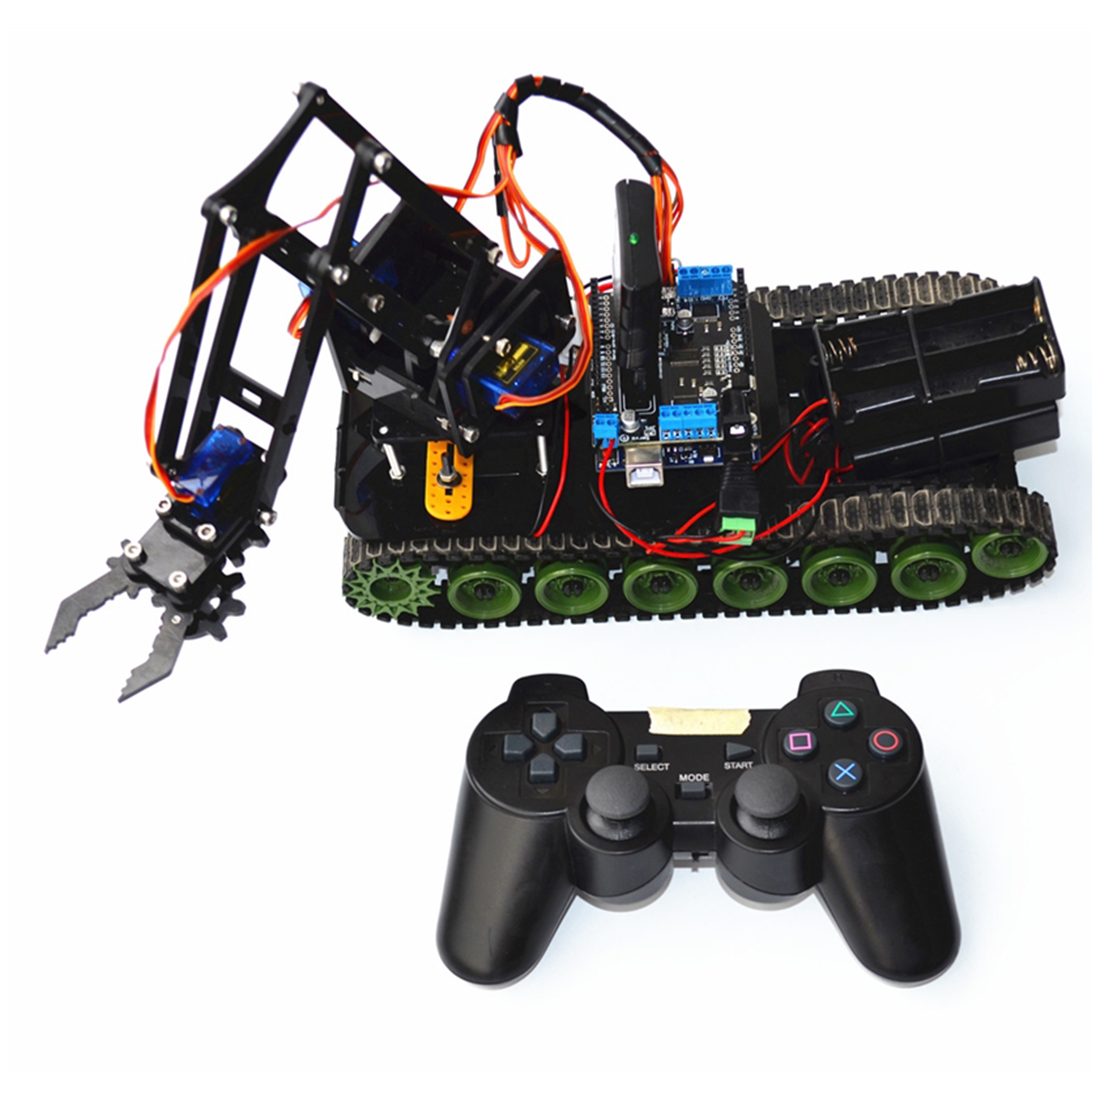 New DIY Programmable Arduino Robot Kit Made With Plastic And Metal Material For Arduino 1